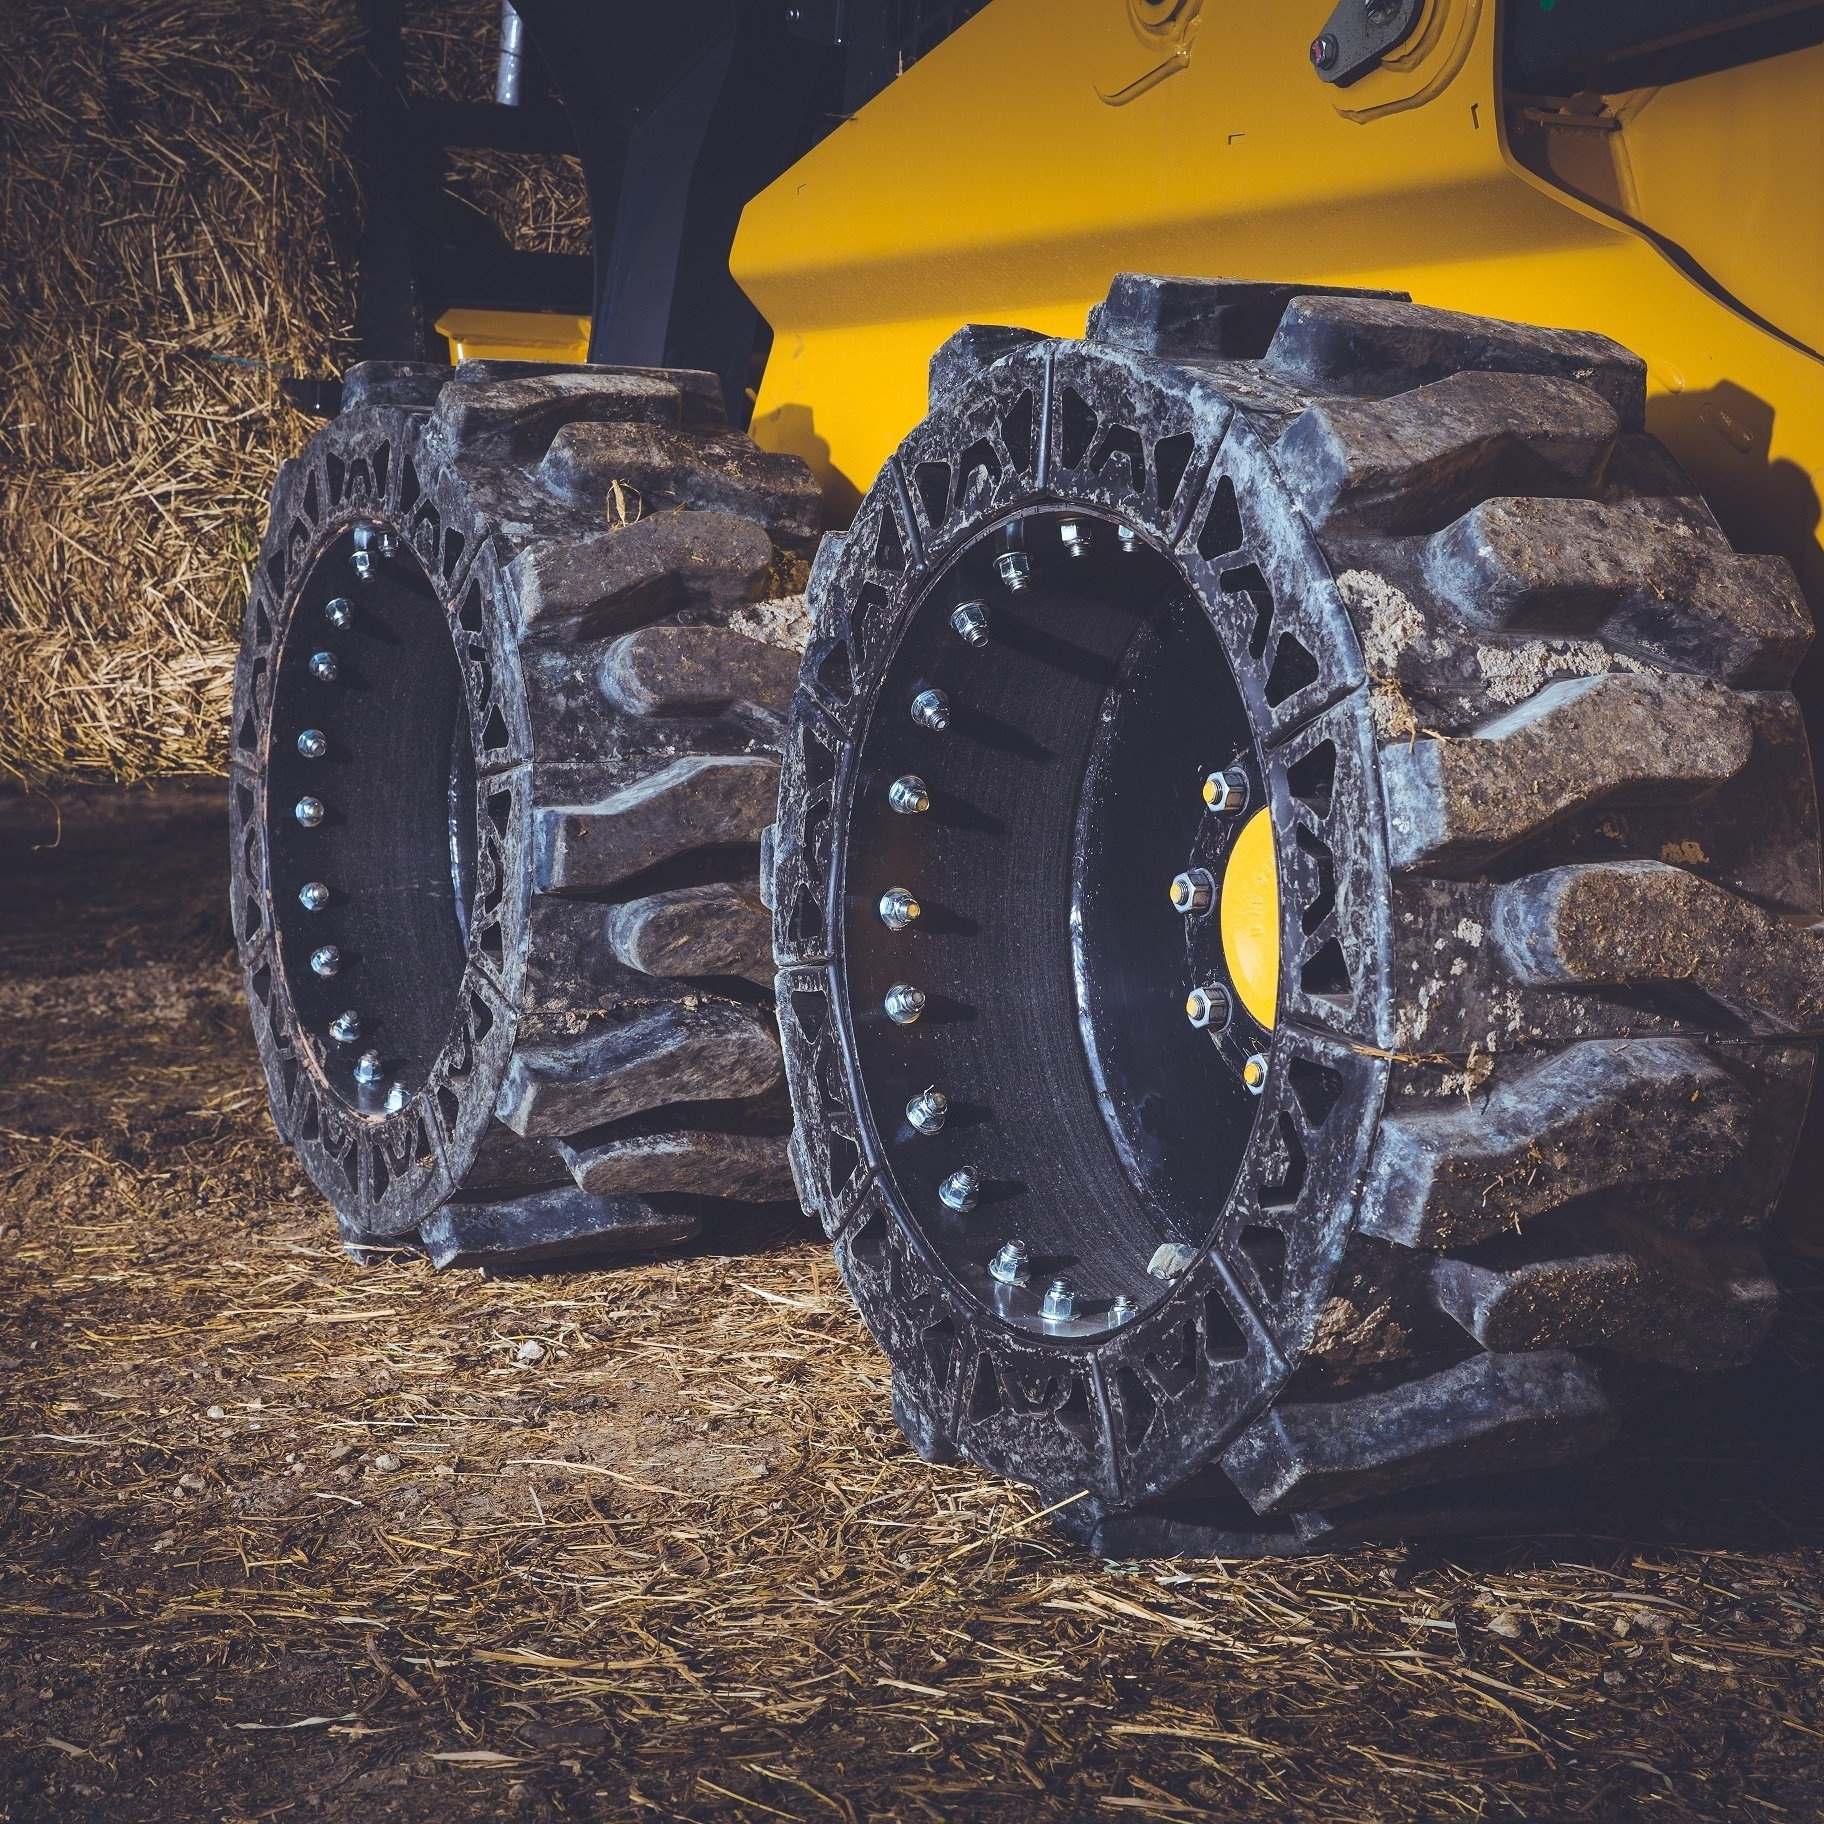 prowler tires guard dog vs evolution wheel ewrs-at skid steer tires